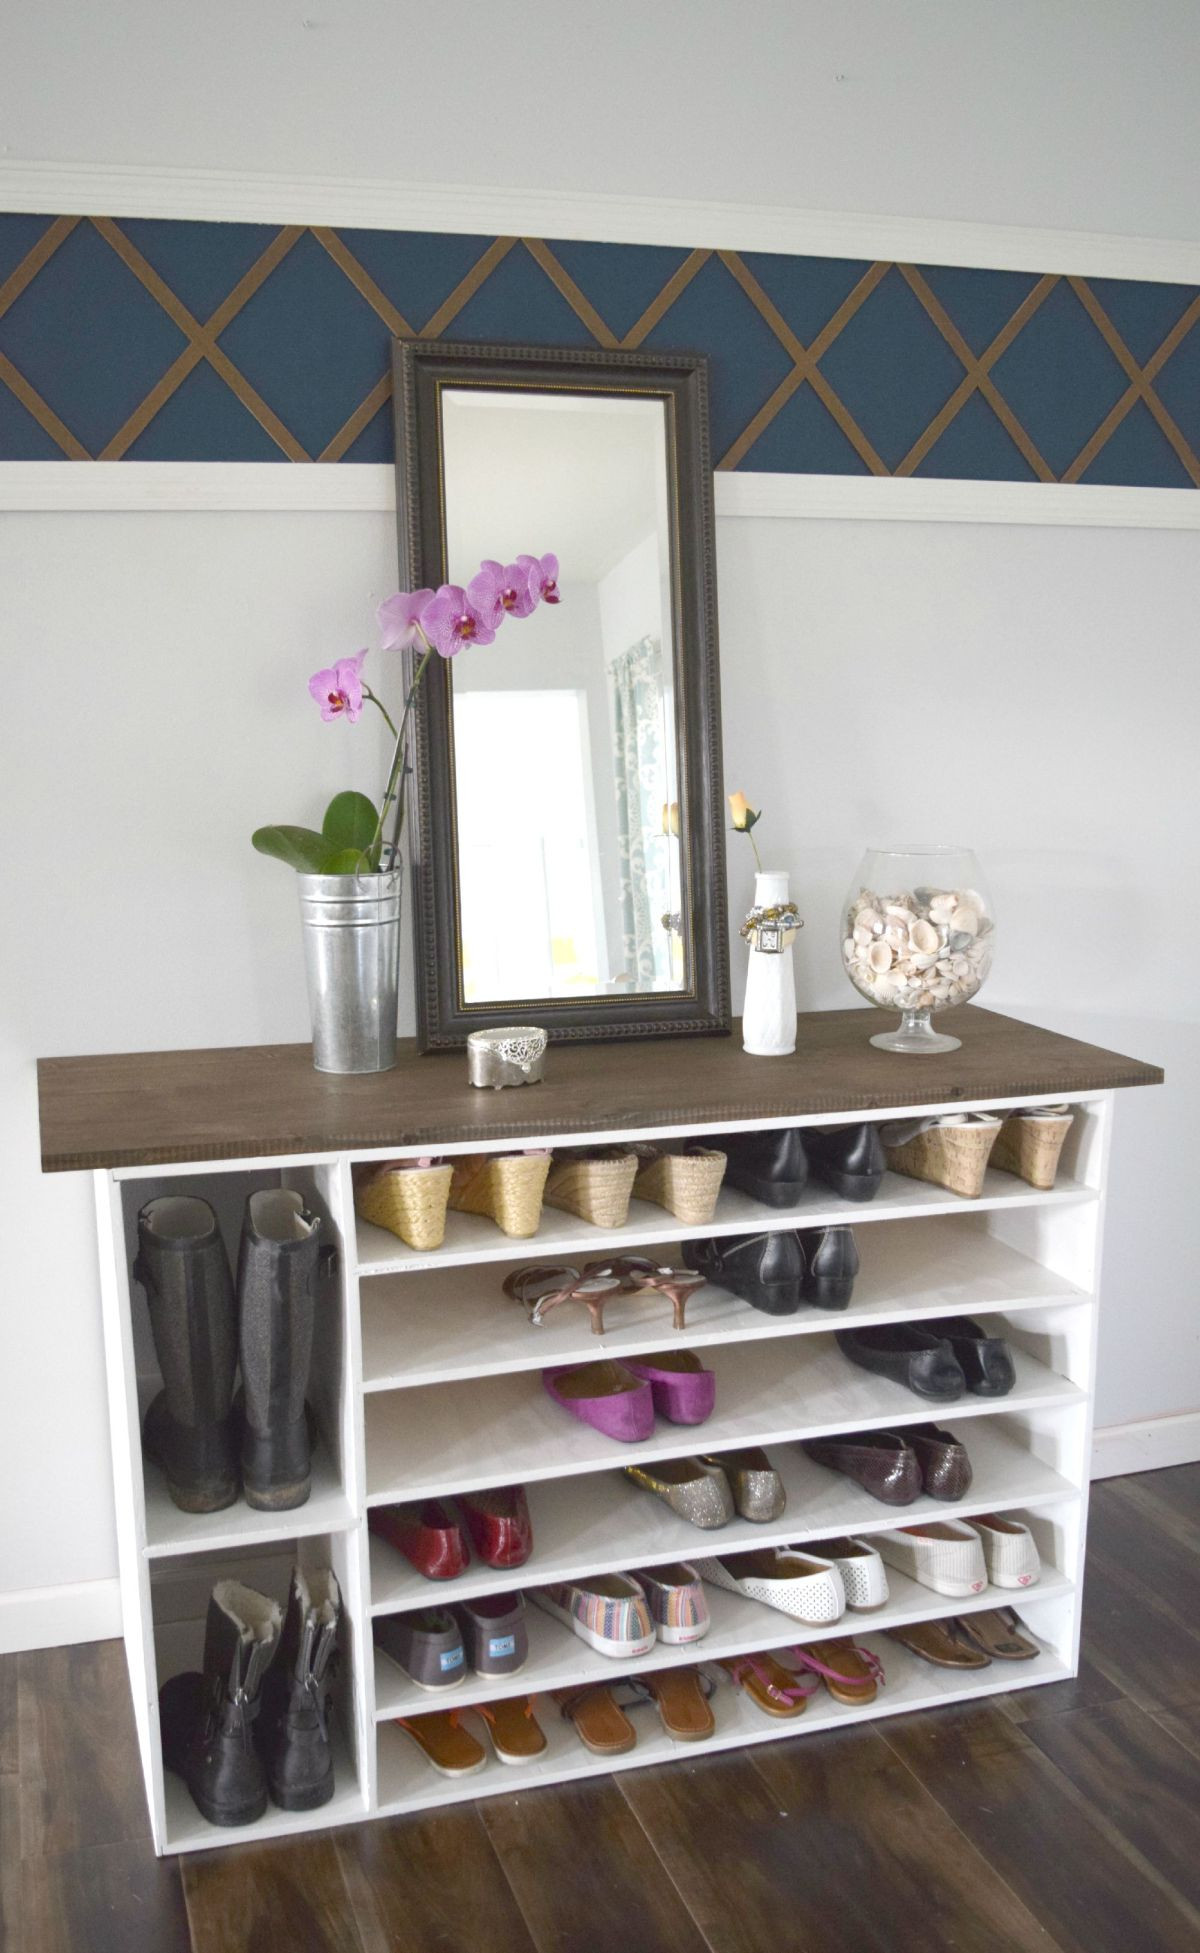 Best ideas about Shoes Organizer DIY . Save or Pin Stylish DIY Shoe Rack Perfect for Any Room Now.